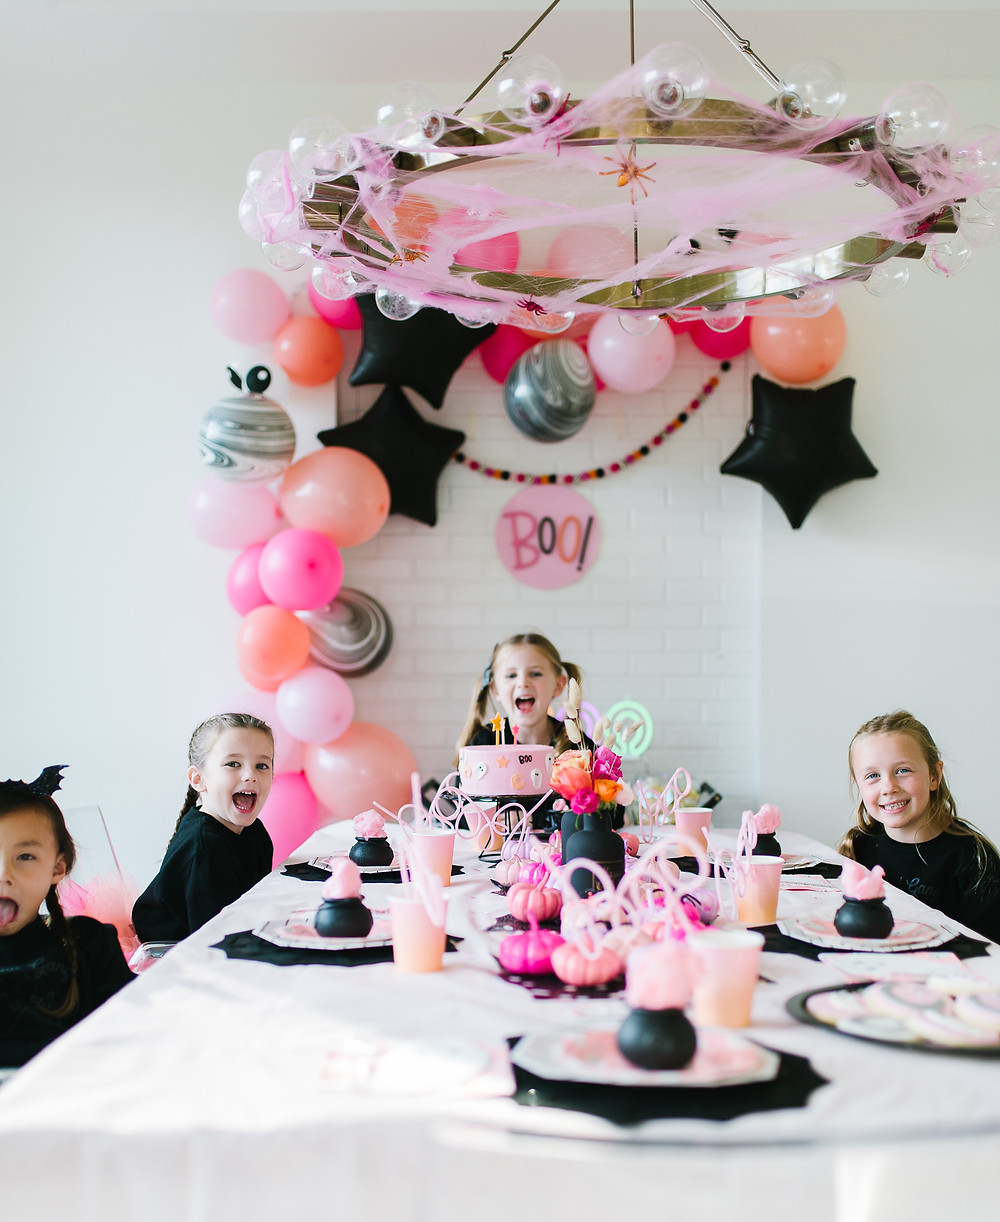 Ghoul gang halloween party with a tablescape of Halloween decor including painted pumpkins, balloons and flowers.